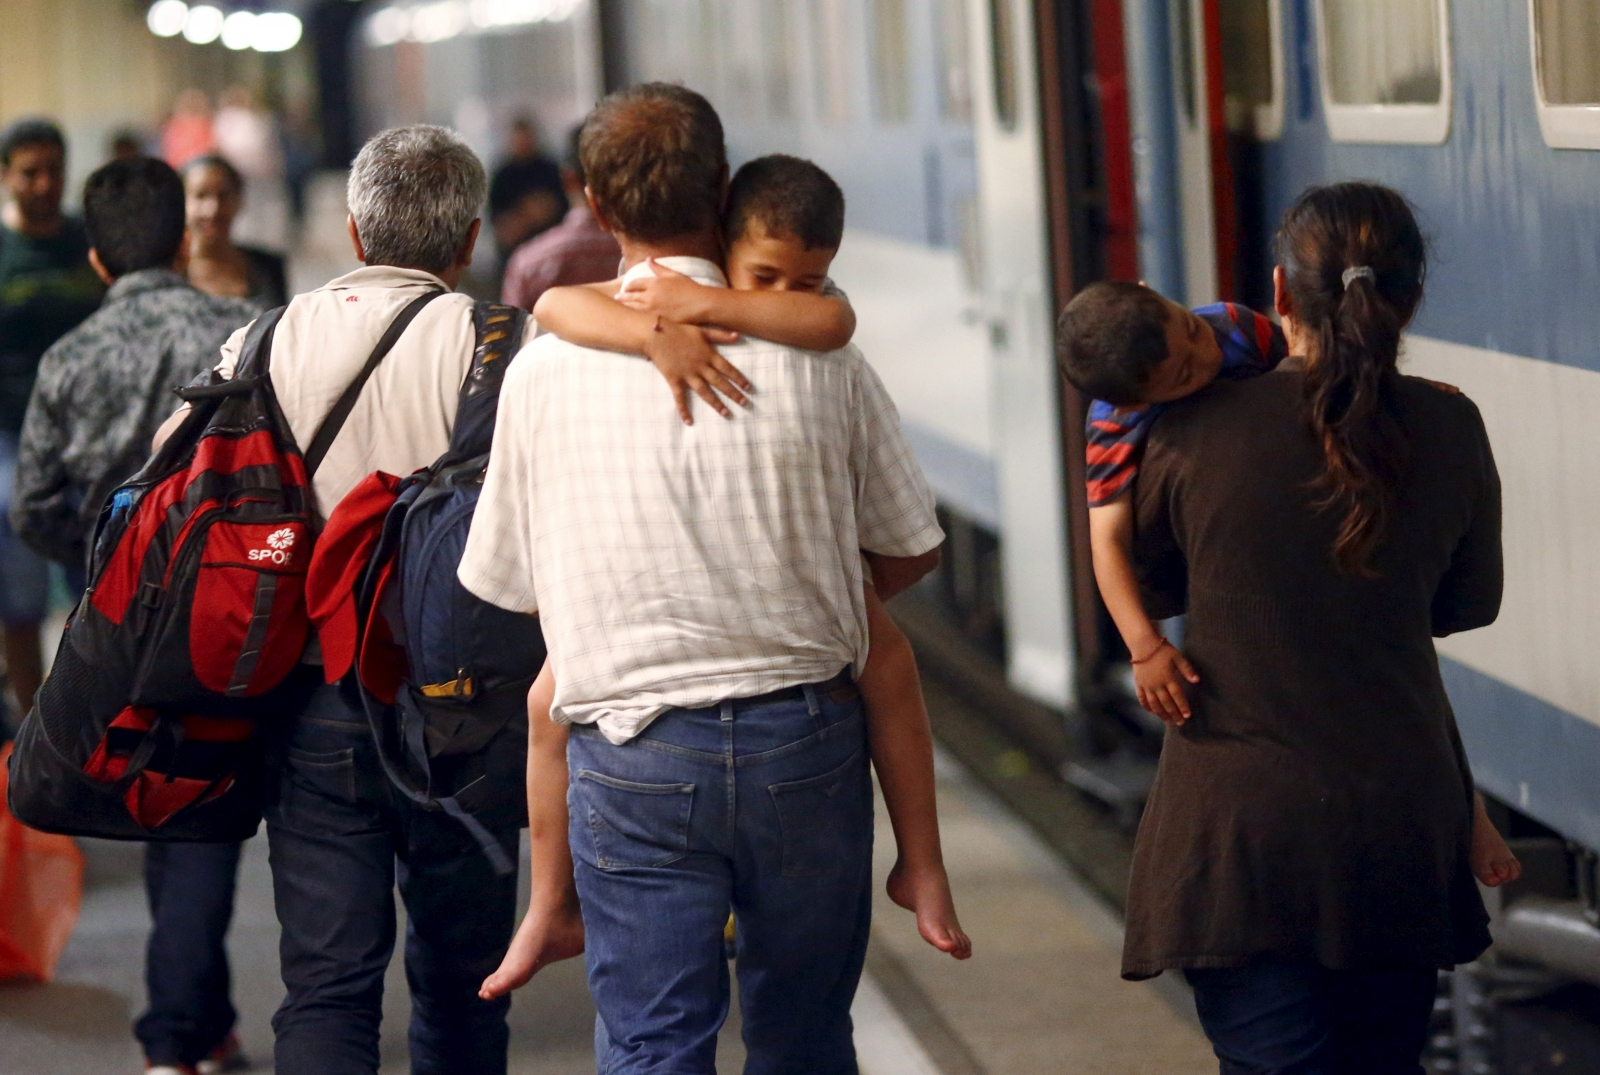 EU migrant crisis, trains arrive in Germany